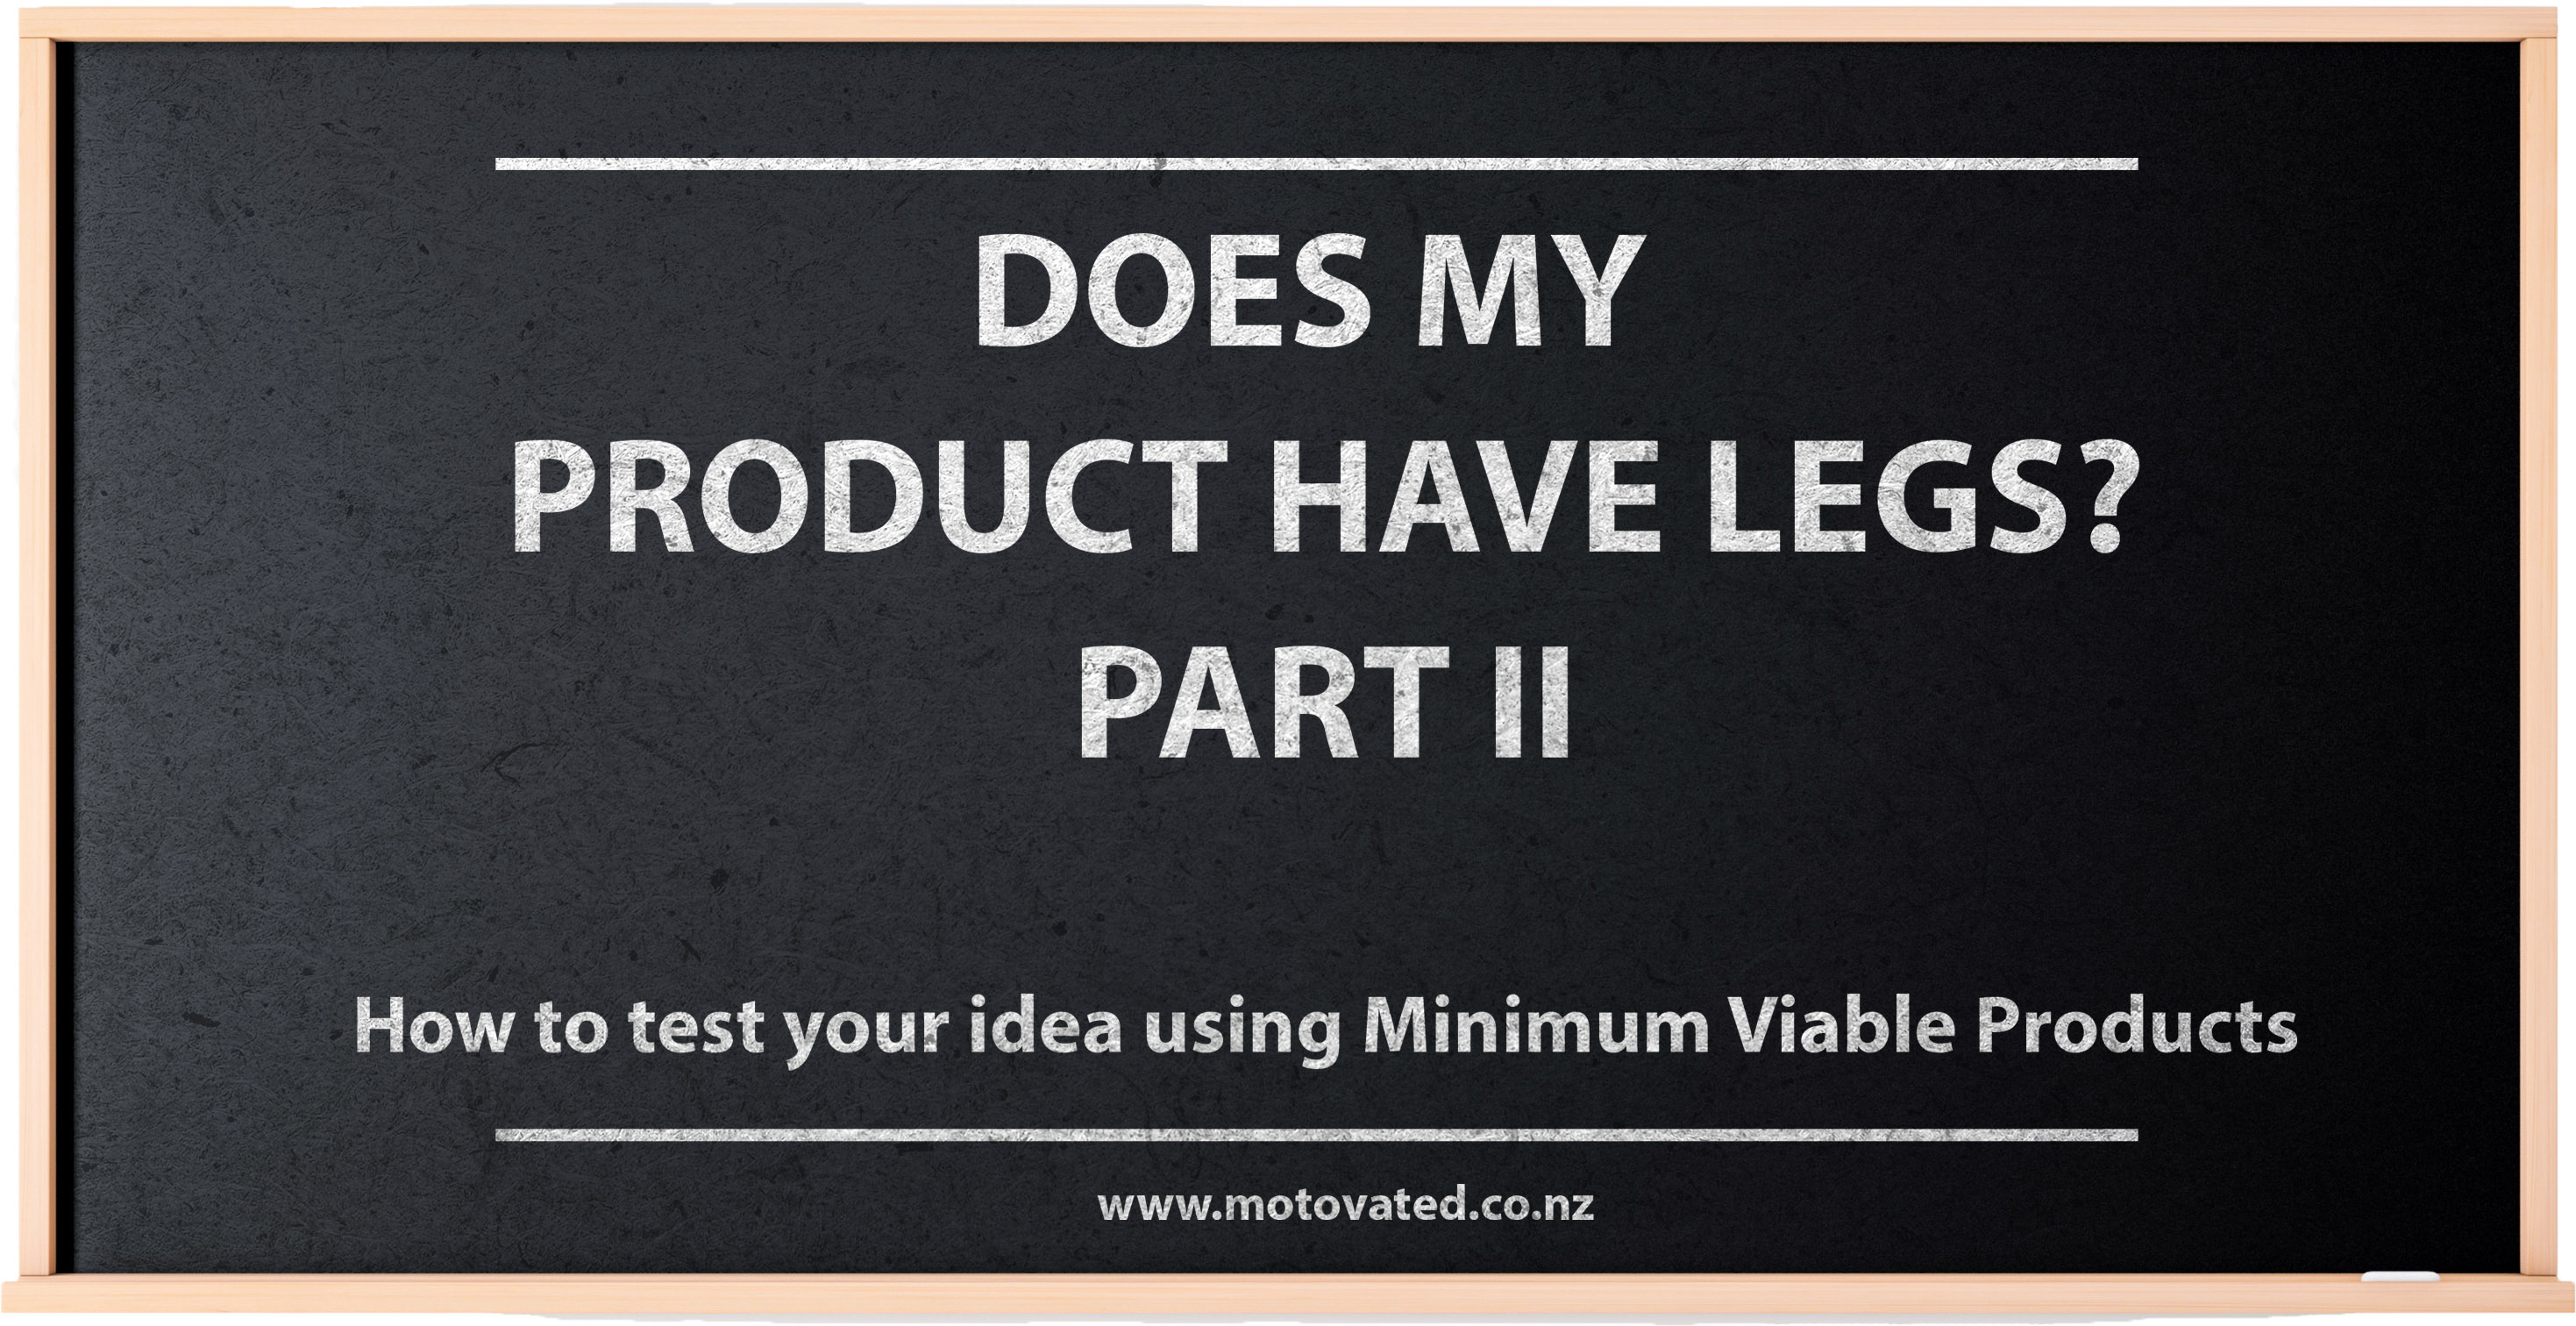 How to test your idea using Minimum Viable Products